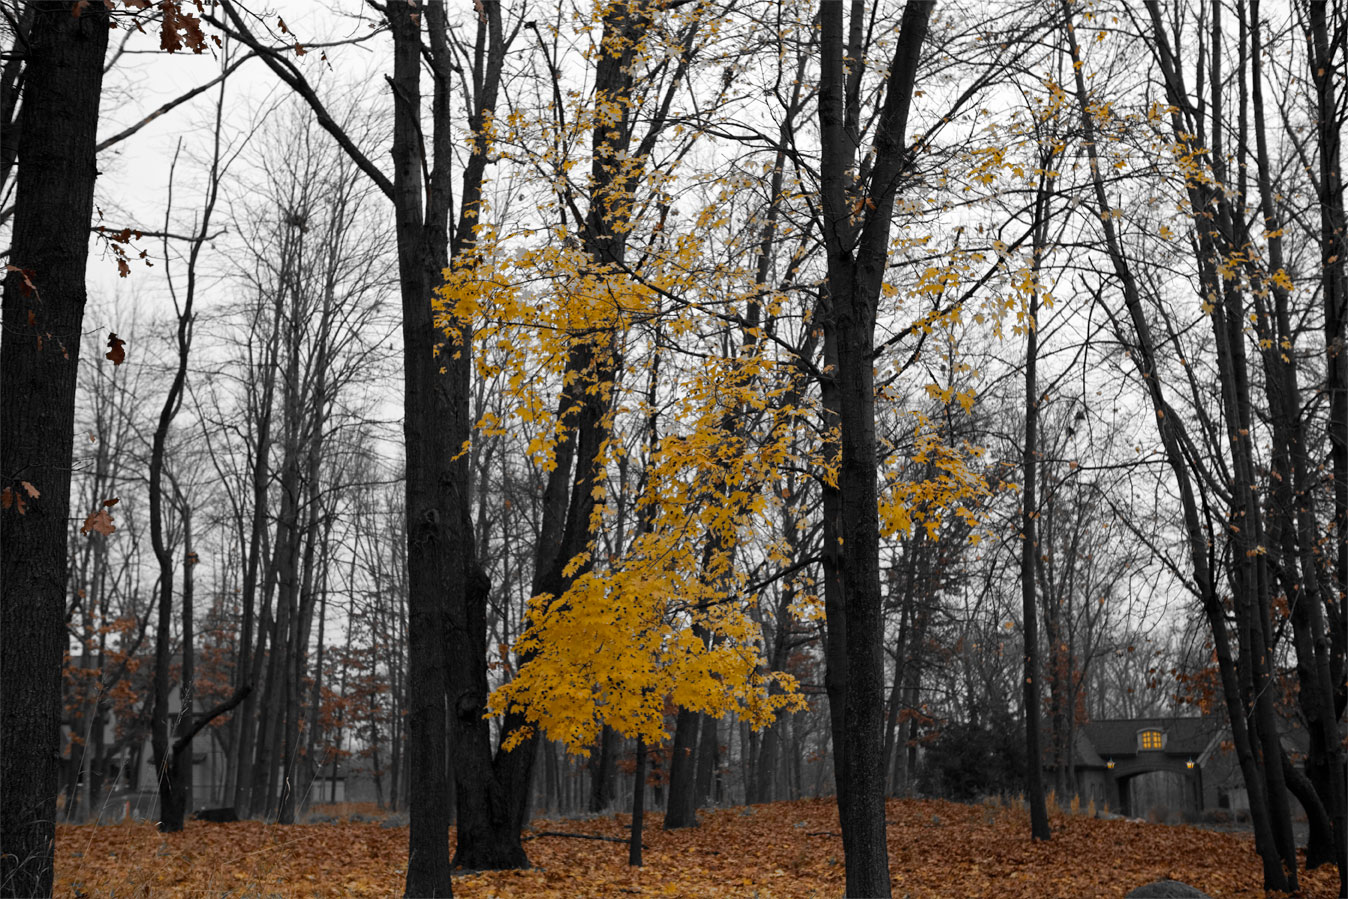 The fall is over. The leaves should all be bagged and gone in trash. Some leaves are still on ground waiting to be picked up. The woods have to be bleak and gloomy grey by now, all waiting for the first snow. But you still find some stubborn and insubordinate leaves who did not get the memo.